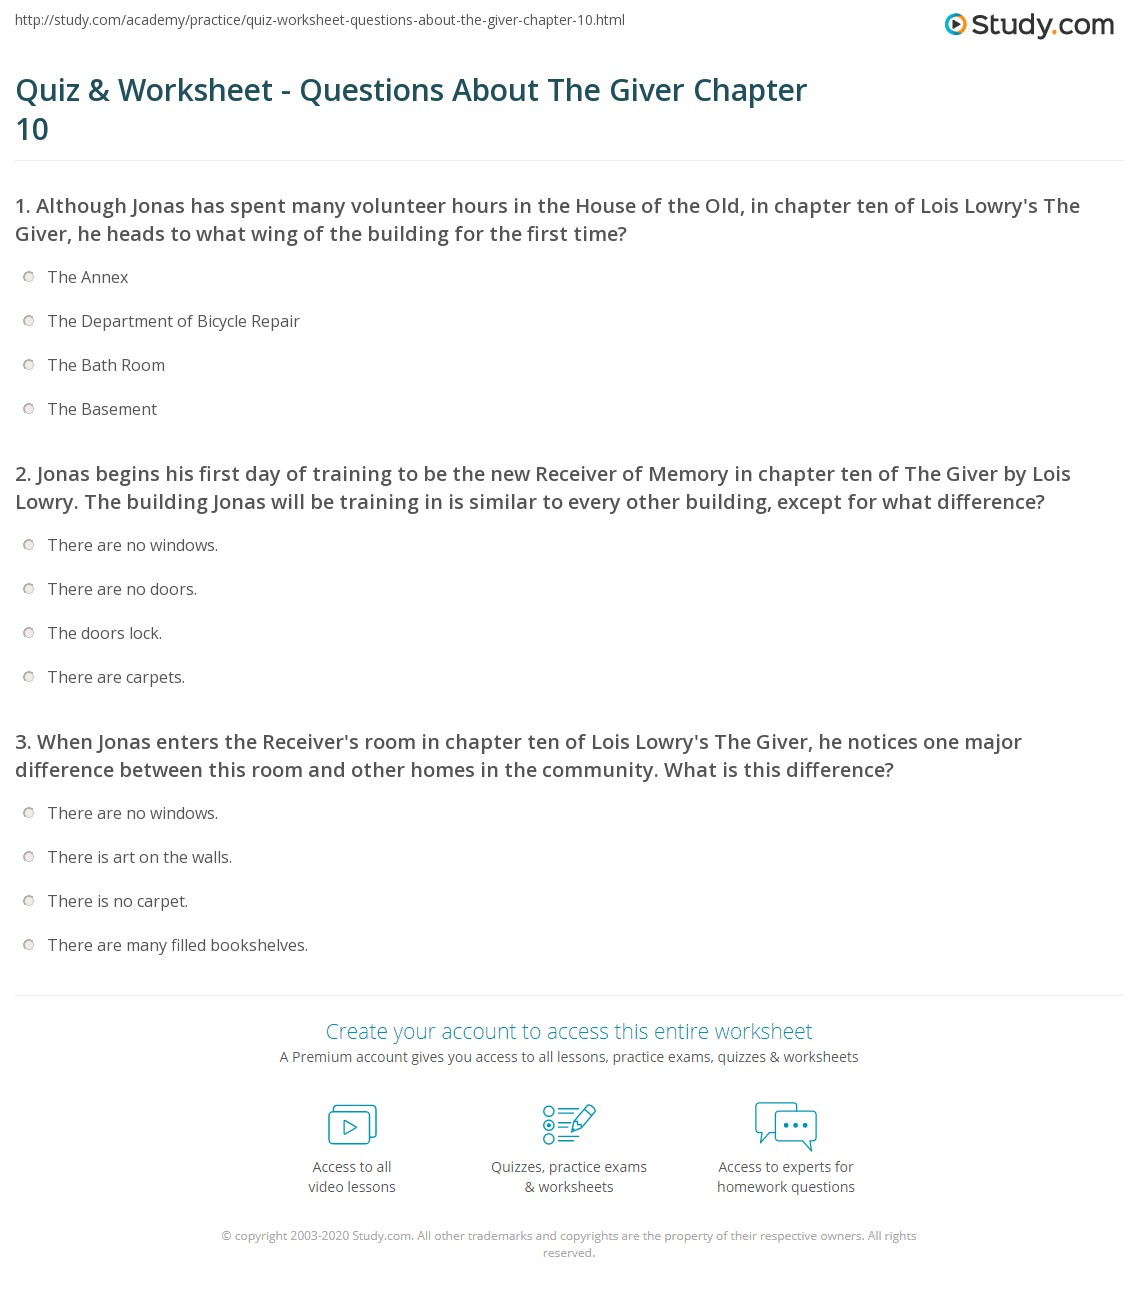 Quiz & Worksheet - Questions About The Giver Chapter 10 | Study.com